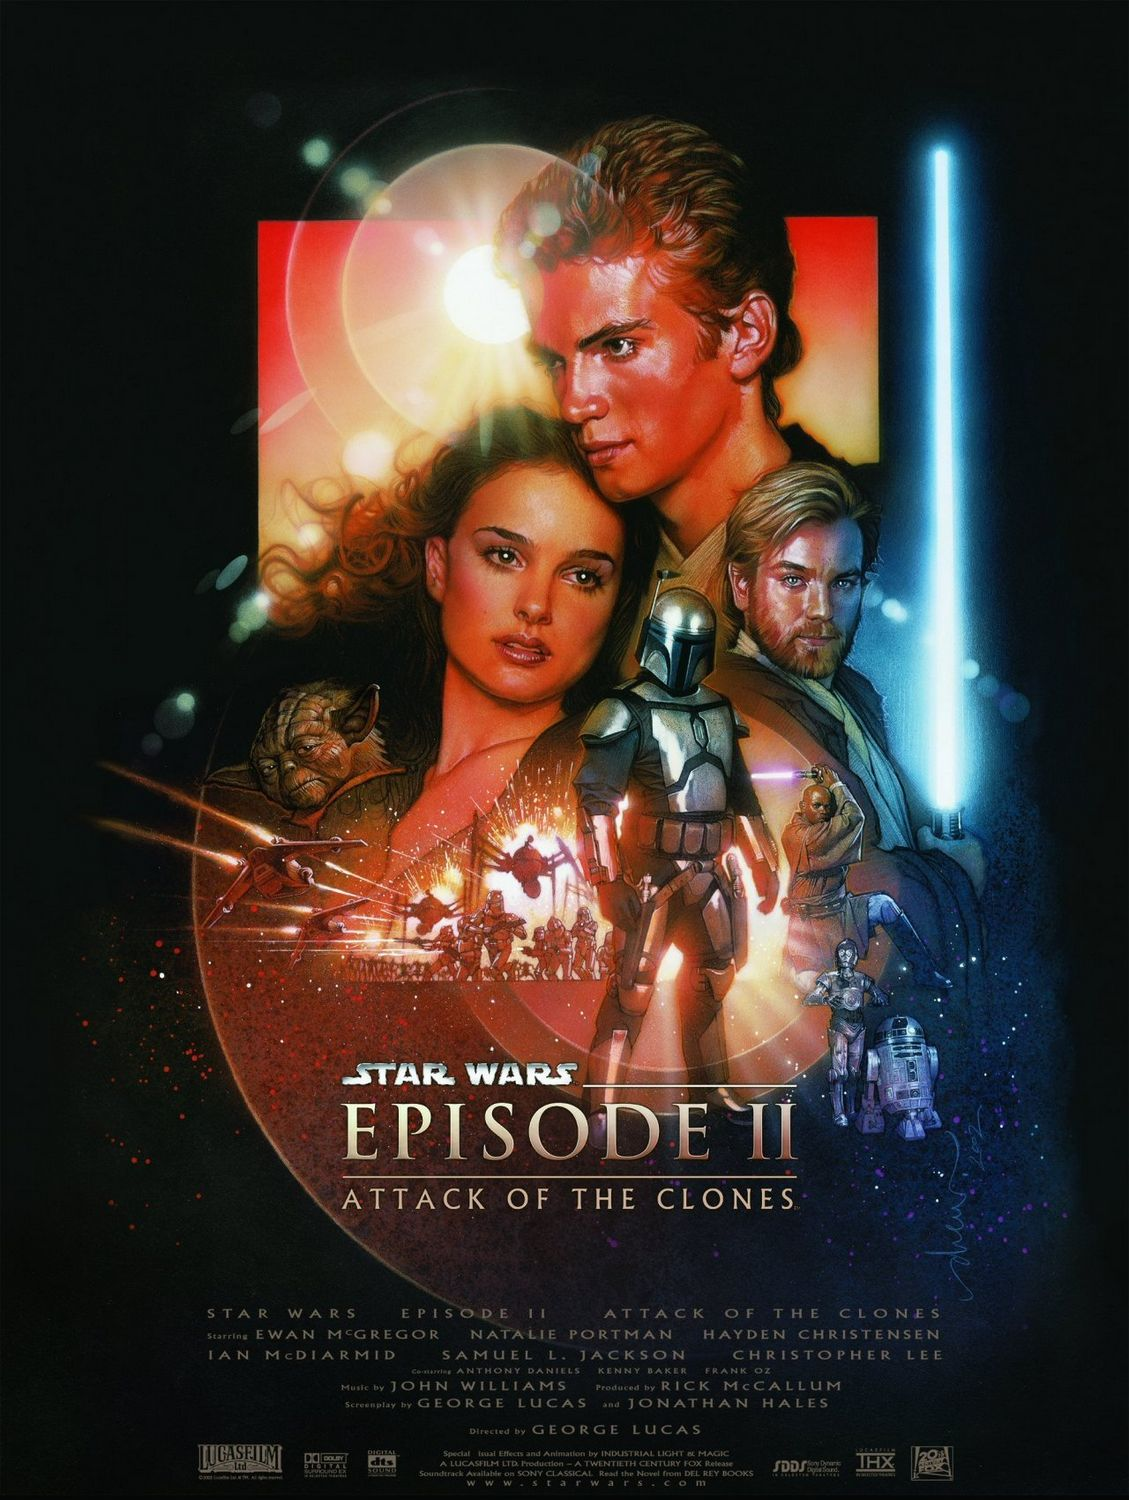 http://1.bp.blogspot.com/-YxC_Z67SvkE/TvYLXxehbTI/AAAAAAAABSk/r90EIKZIe7I/s1600/star_wars_episode_two_attack_of_the_clones_ver2_xlg.jpg